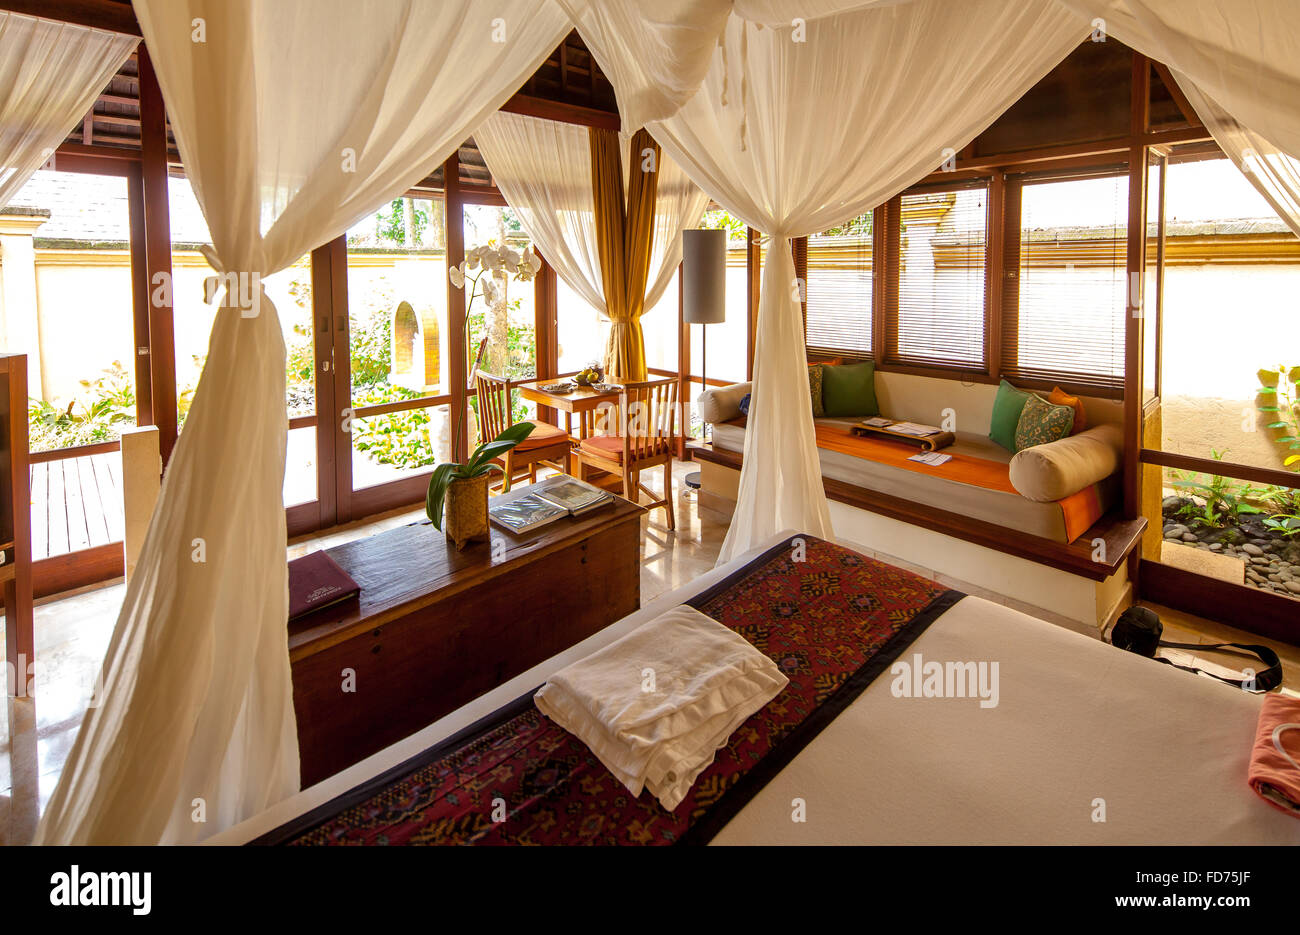 Hotel rooms with four-poster bed, tourism, travel, Ubud, Bali, Indonesia, Asia - Stock Image